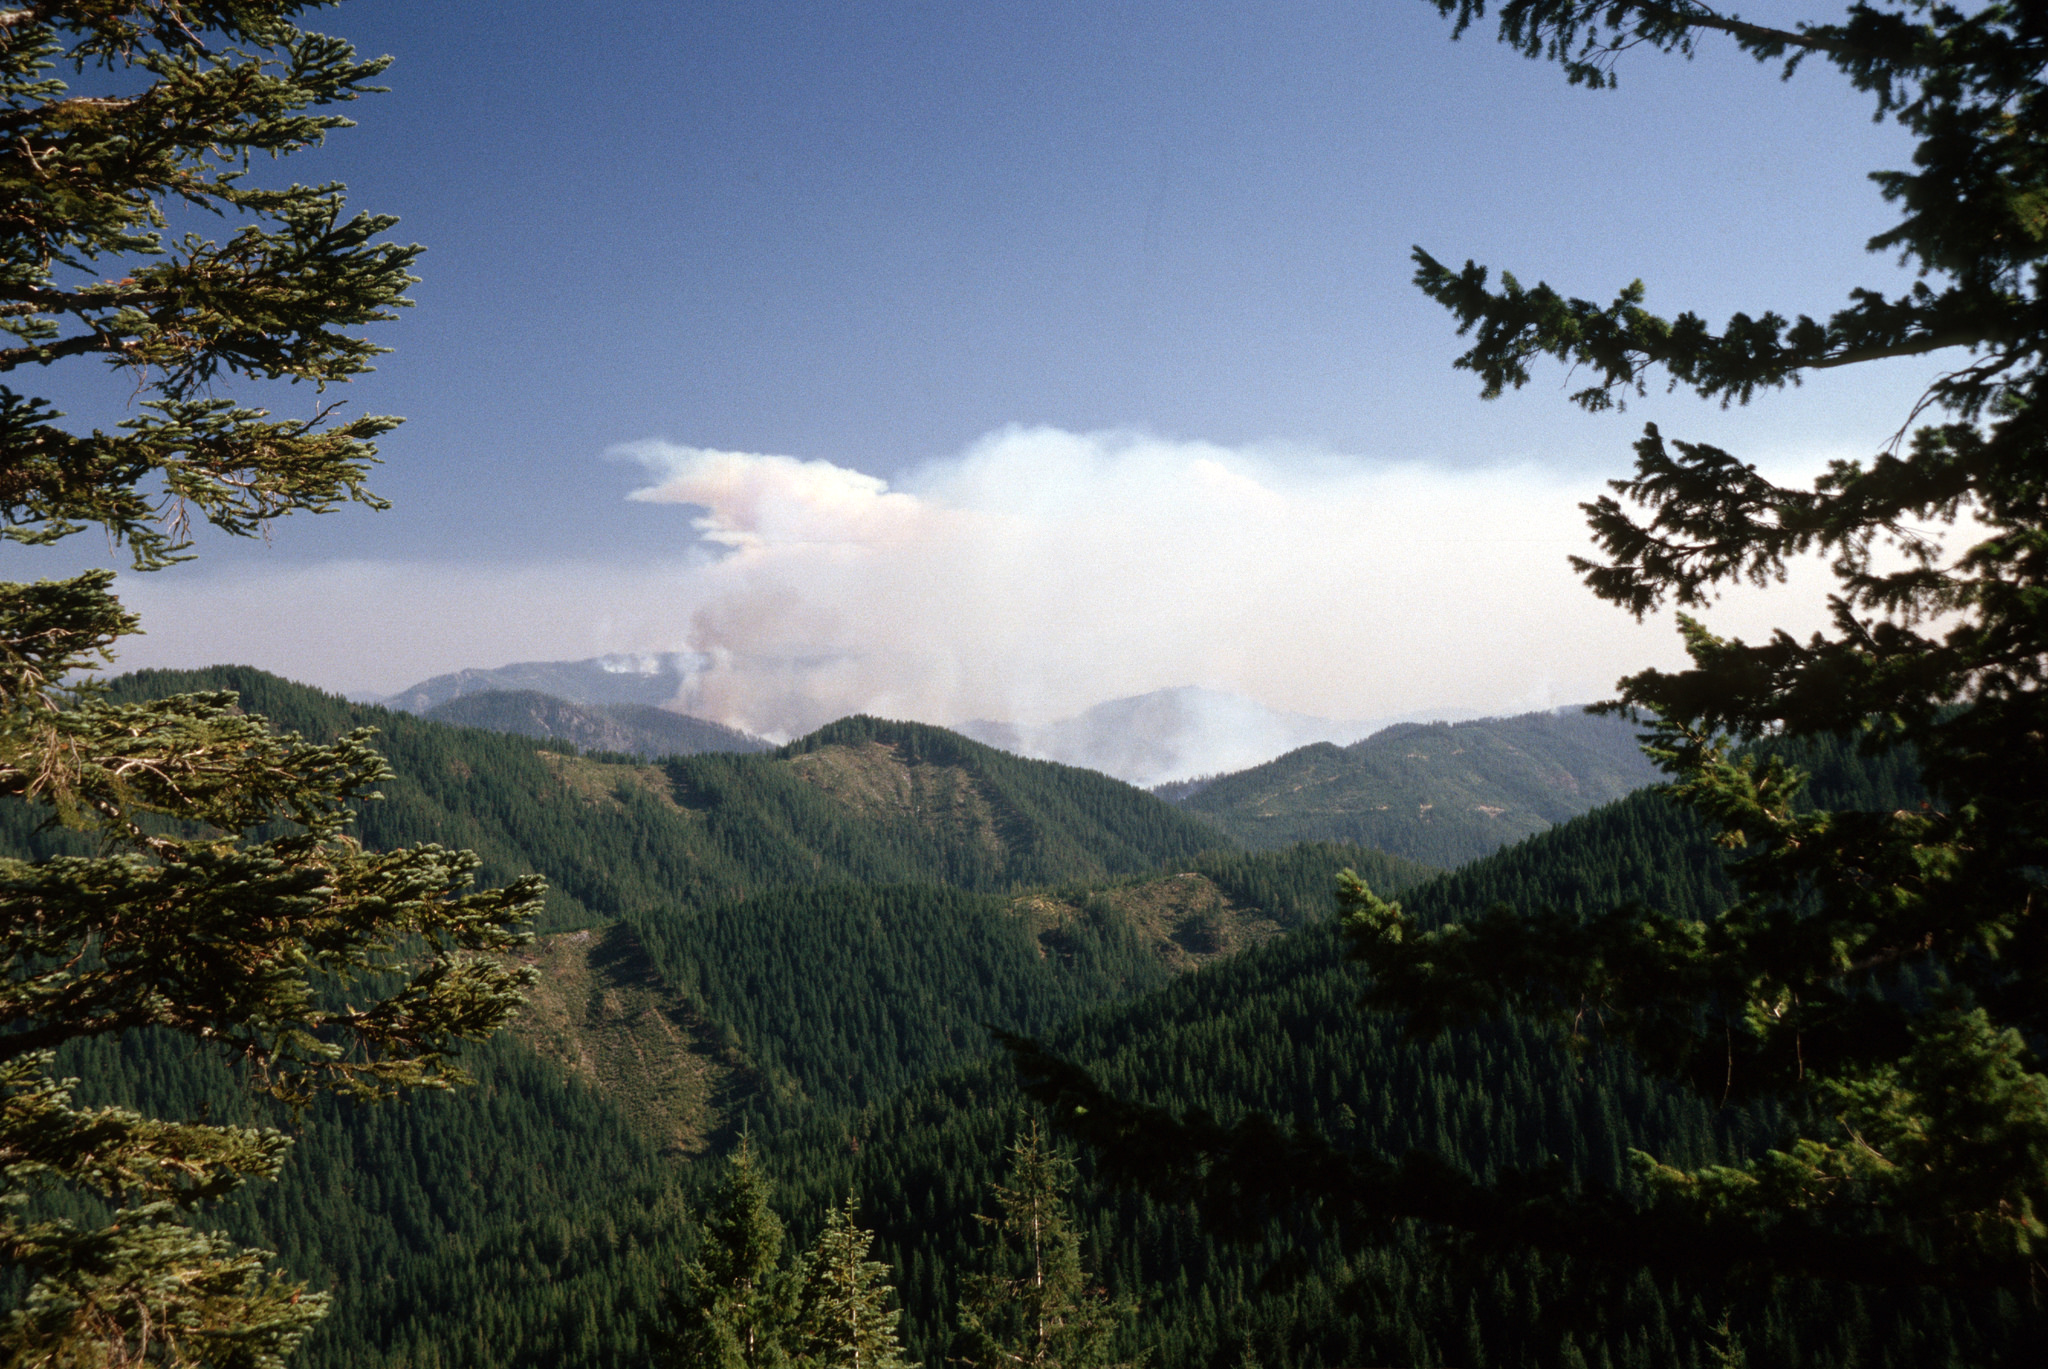 A plume of smoke over distant hills on Rogue River-Siskiyou National Forest.